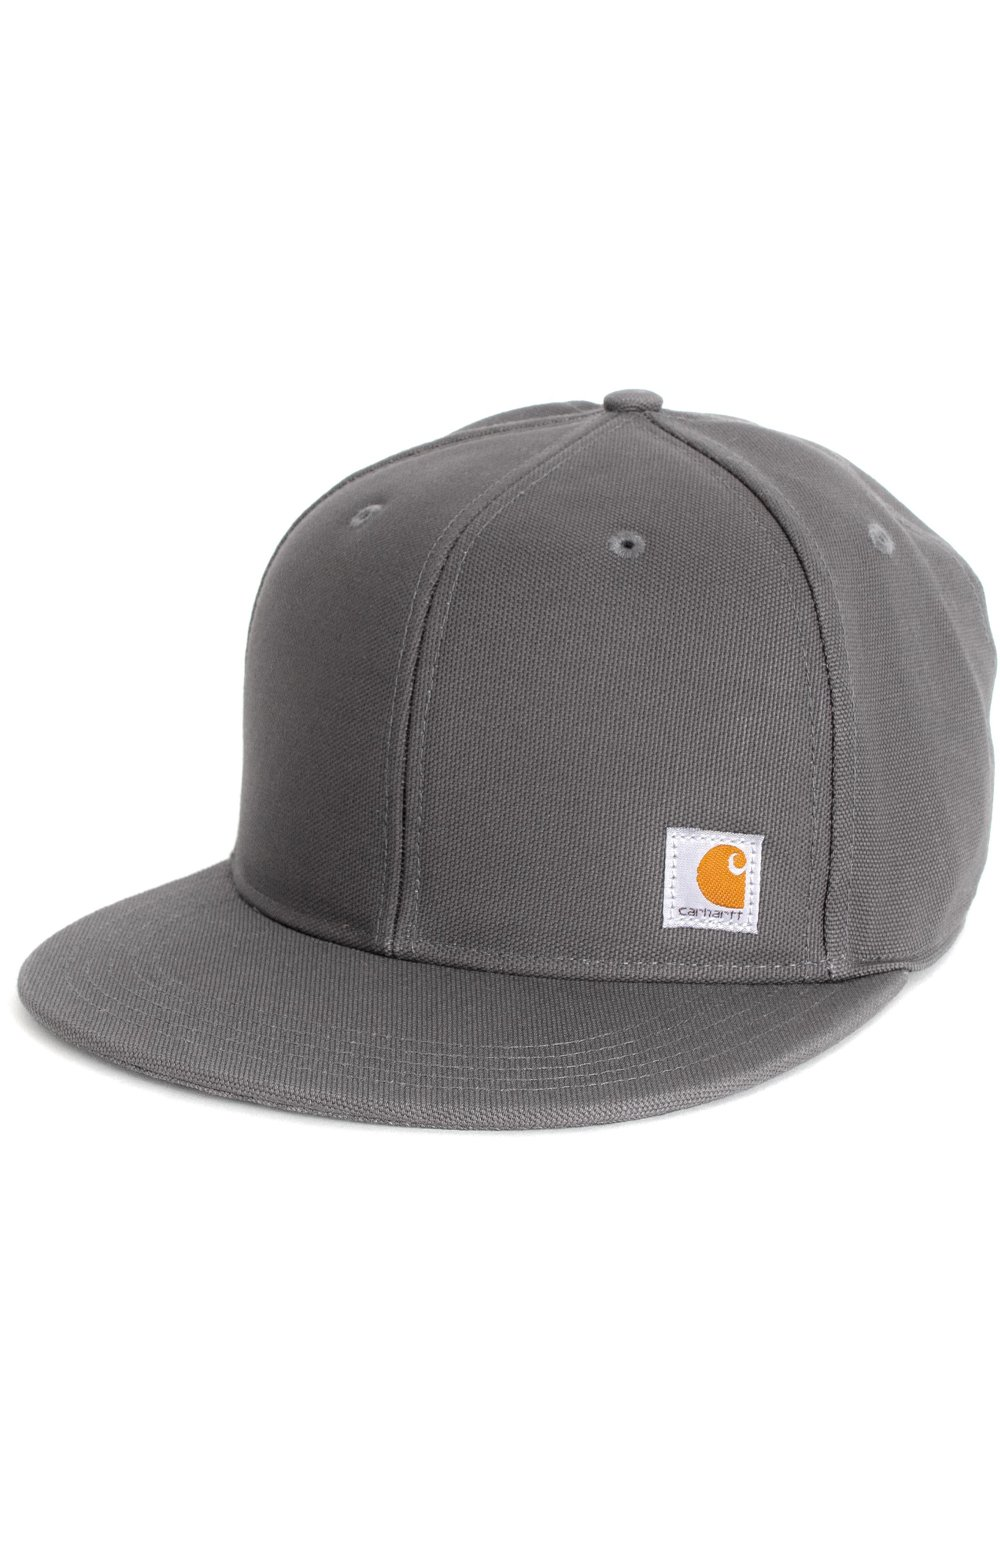 (101604) Ashland Snap-Back Hat - Gravel